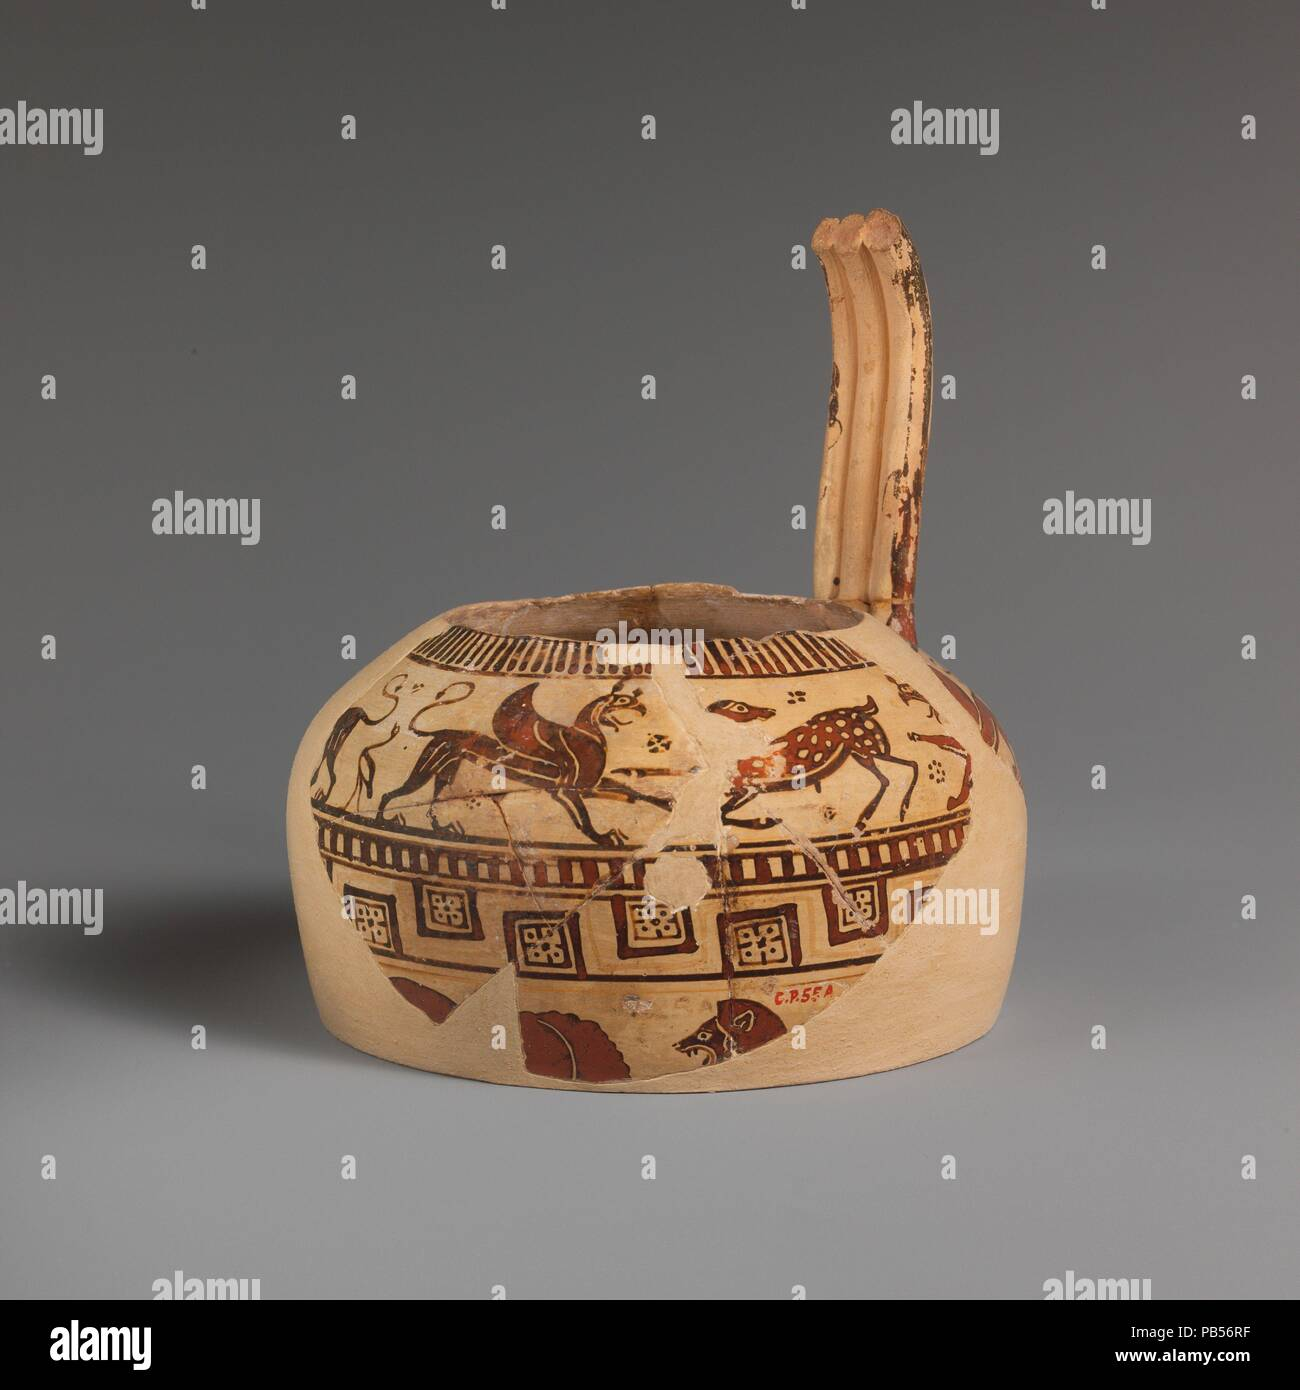 Fragment of a terracotta oinochoe (jug). Culture: East Greek, Milesian, Fikellura. Dimensions: H. of a 5 3/4 in. (14.6 cm); length of b 3 1/2 in. (8.9 cm). Date: ca. 560-550 B.C..  On the shoulder, deer attacked by sphinxes and griffins, water birds  On the body, bull attacked by lion  This fine fragment represents an early phase in the development of Fikellura pottery. In the animal groups as well as the drawing, there is a vitality that later subsides. The name Fikellura derives from a site on the island of Rhodes to which this fabric has been attributed. It is now established that the cente Stock Photo